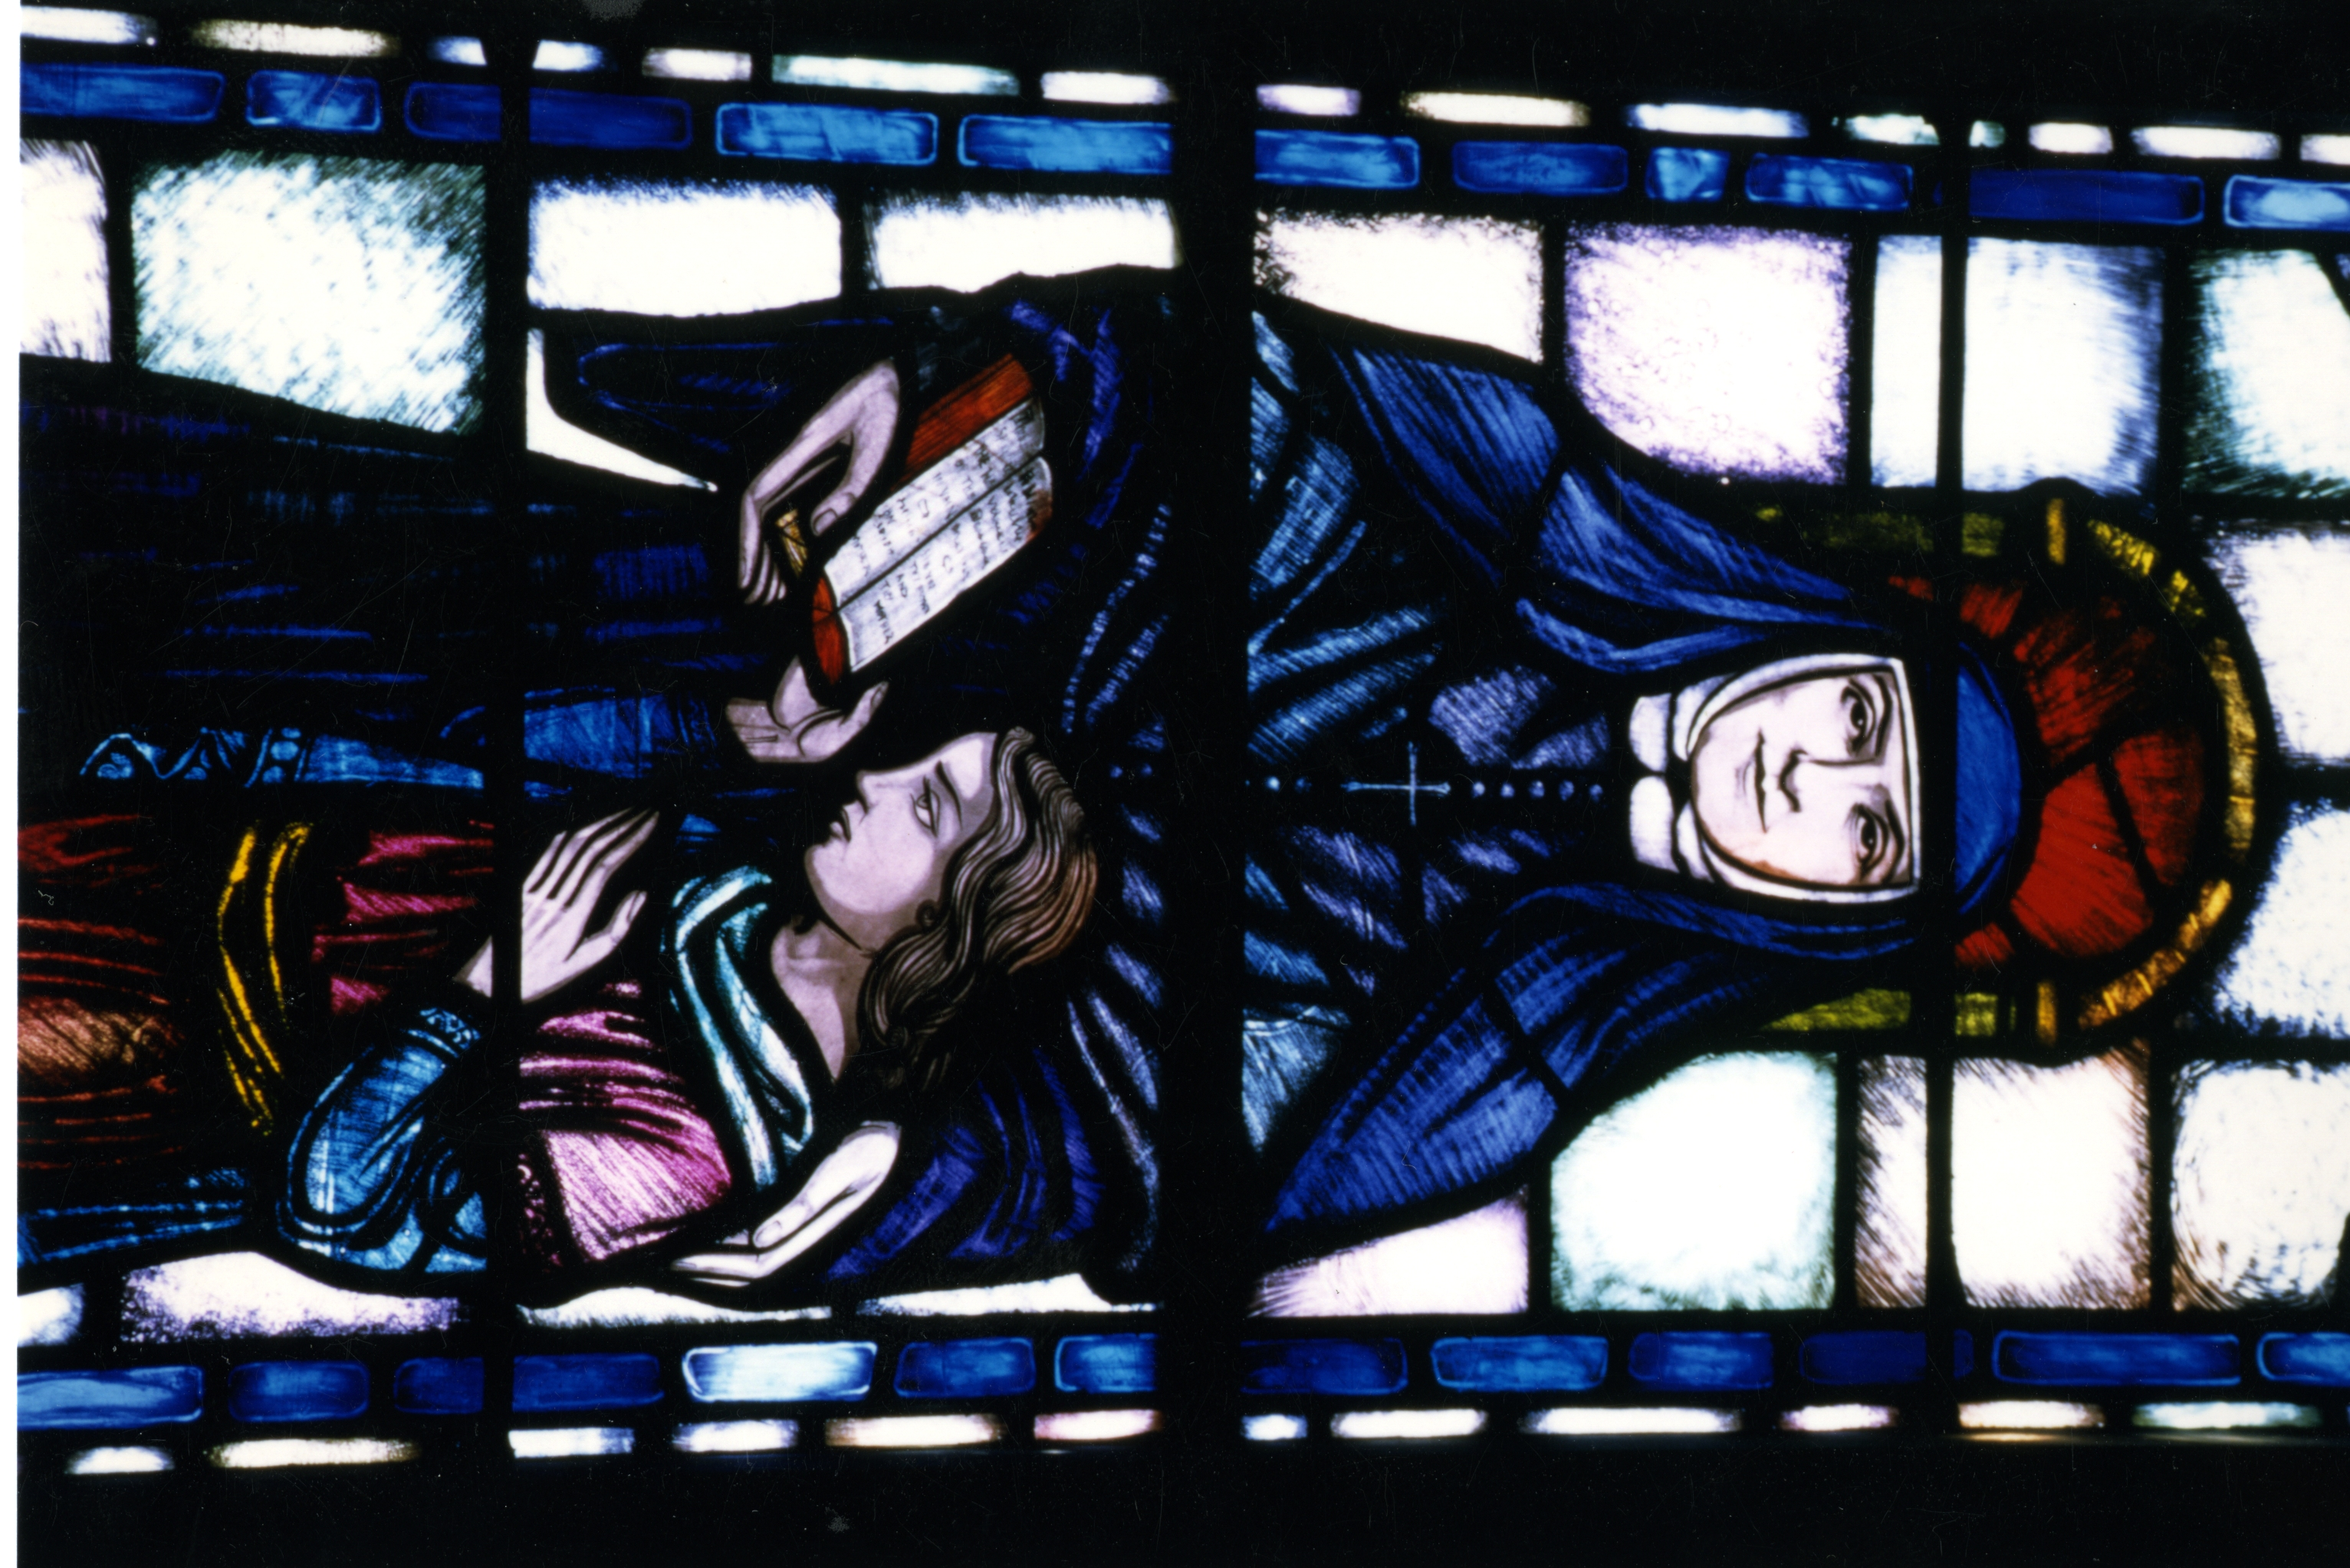 Cornelia_Connelly_stained_glass, 1941